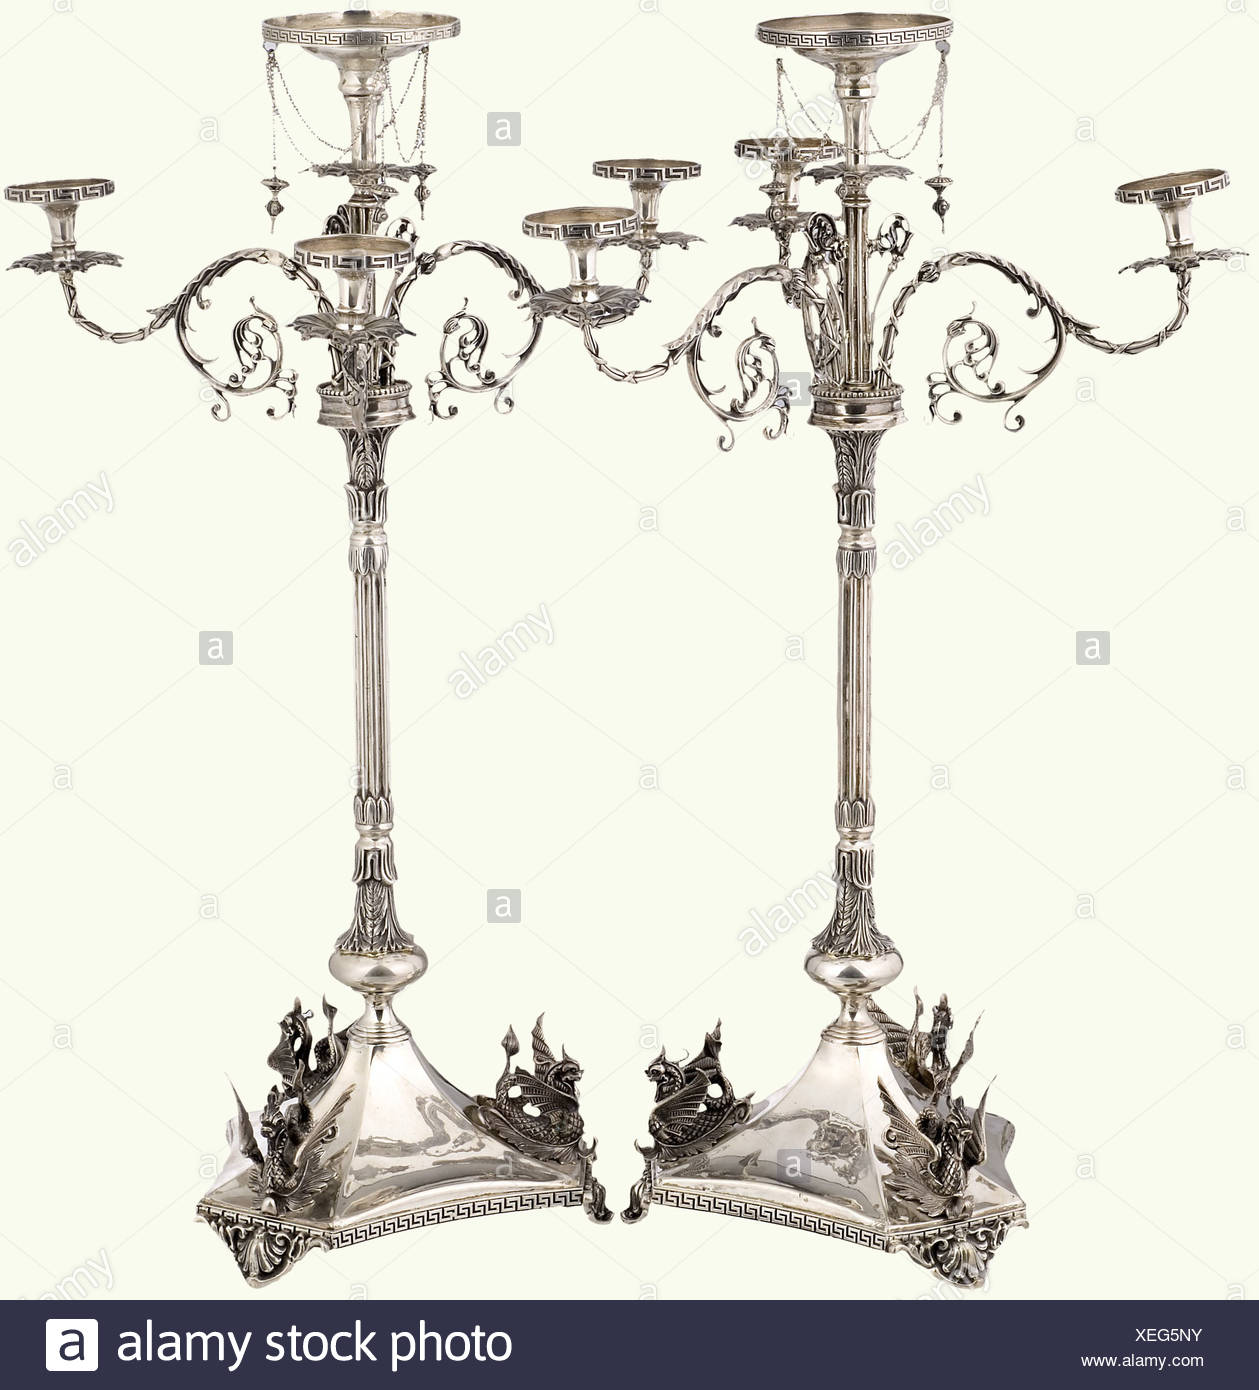 a pair of german ceremonial candelabras end of the 19th century made in several